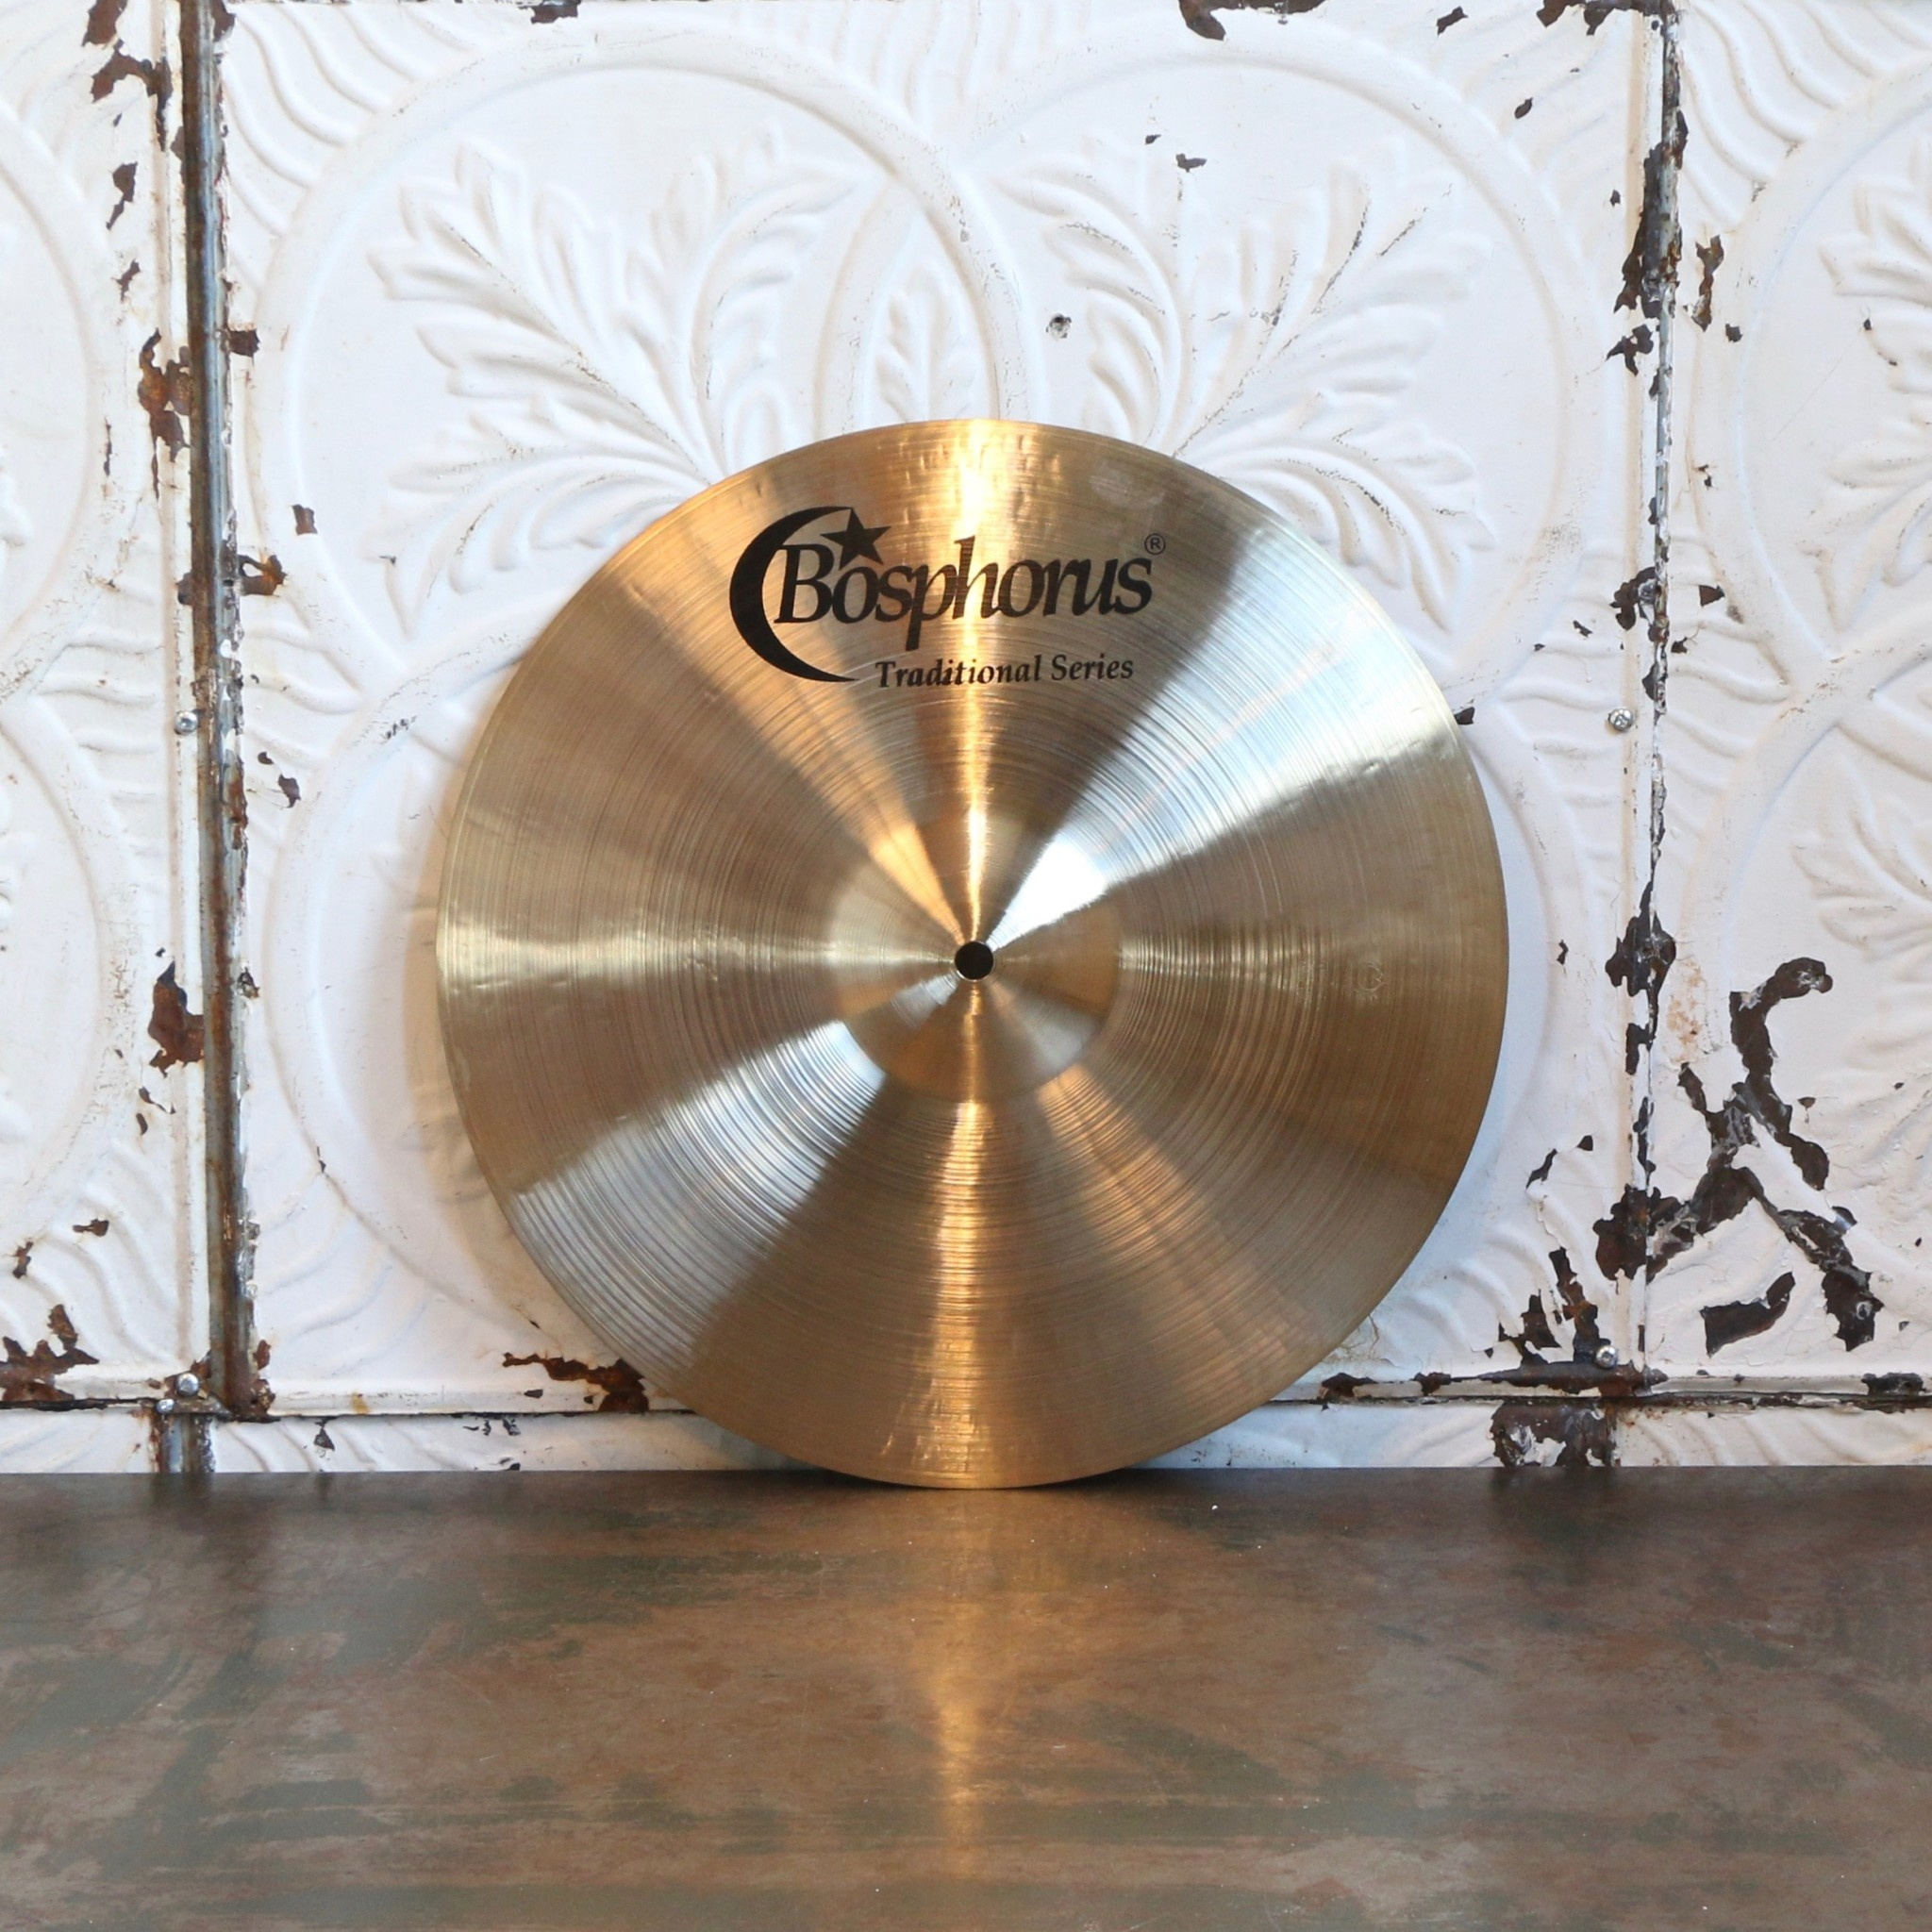 "Bosphorus BOSPHORUS 14"" TRADITIONAL CRASH MED THIN"